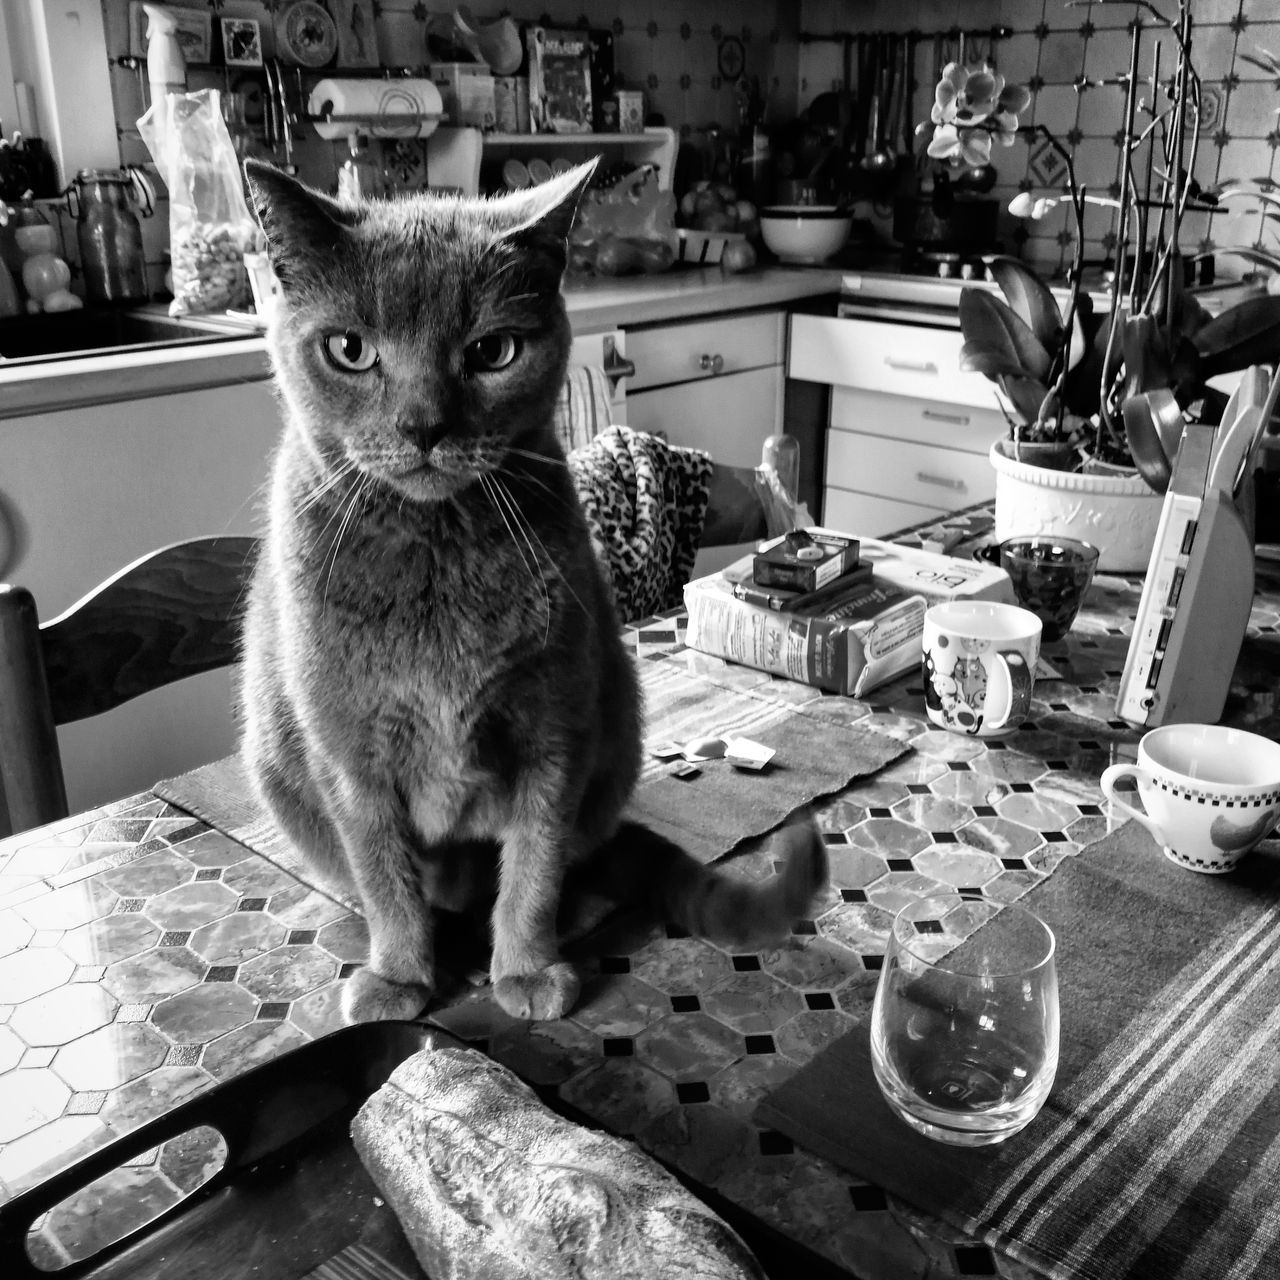 Sunday cat morning 😸 Home Interior Indoor Photography Monochrome Cat Catoftheday Animal Themes Animal Photography Domestic Life Interior Photography Blackandwhite Black And White